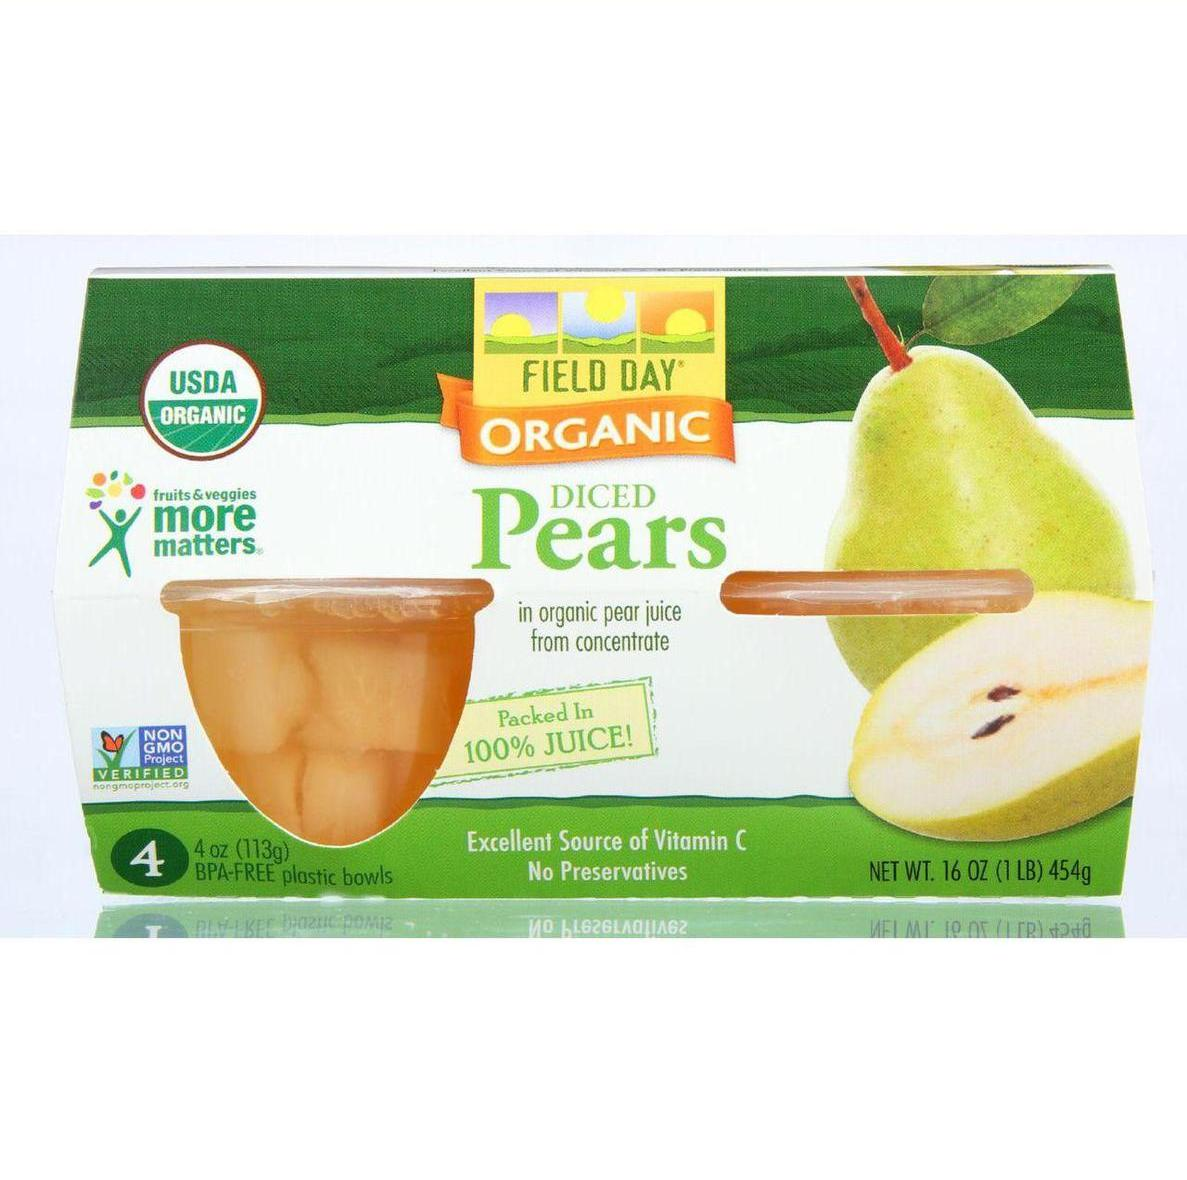 Field Day Fruit Cups Organic Pears 4 4 oz case of 6 by